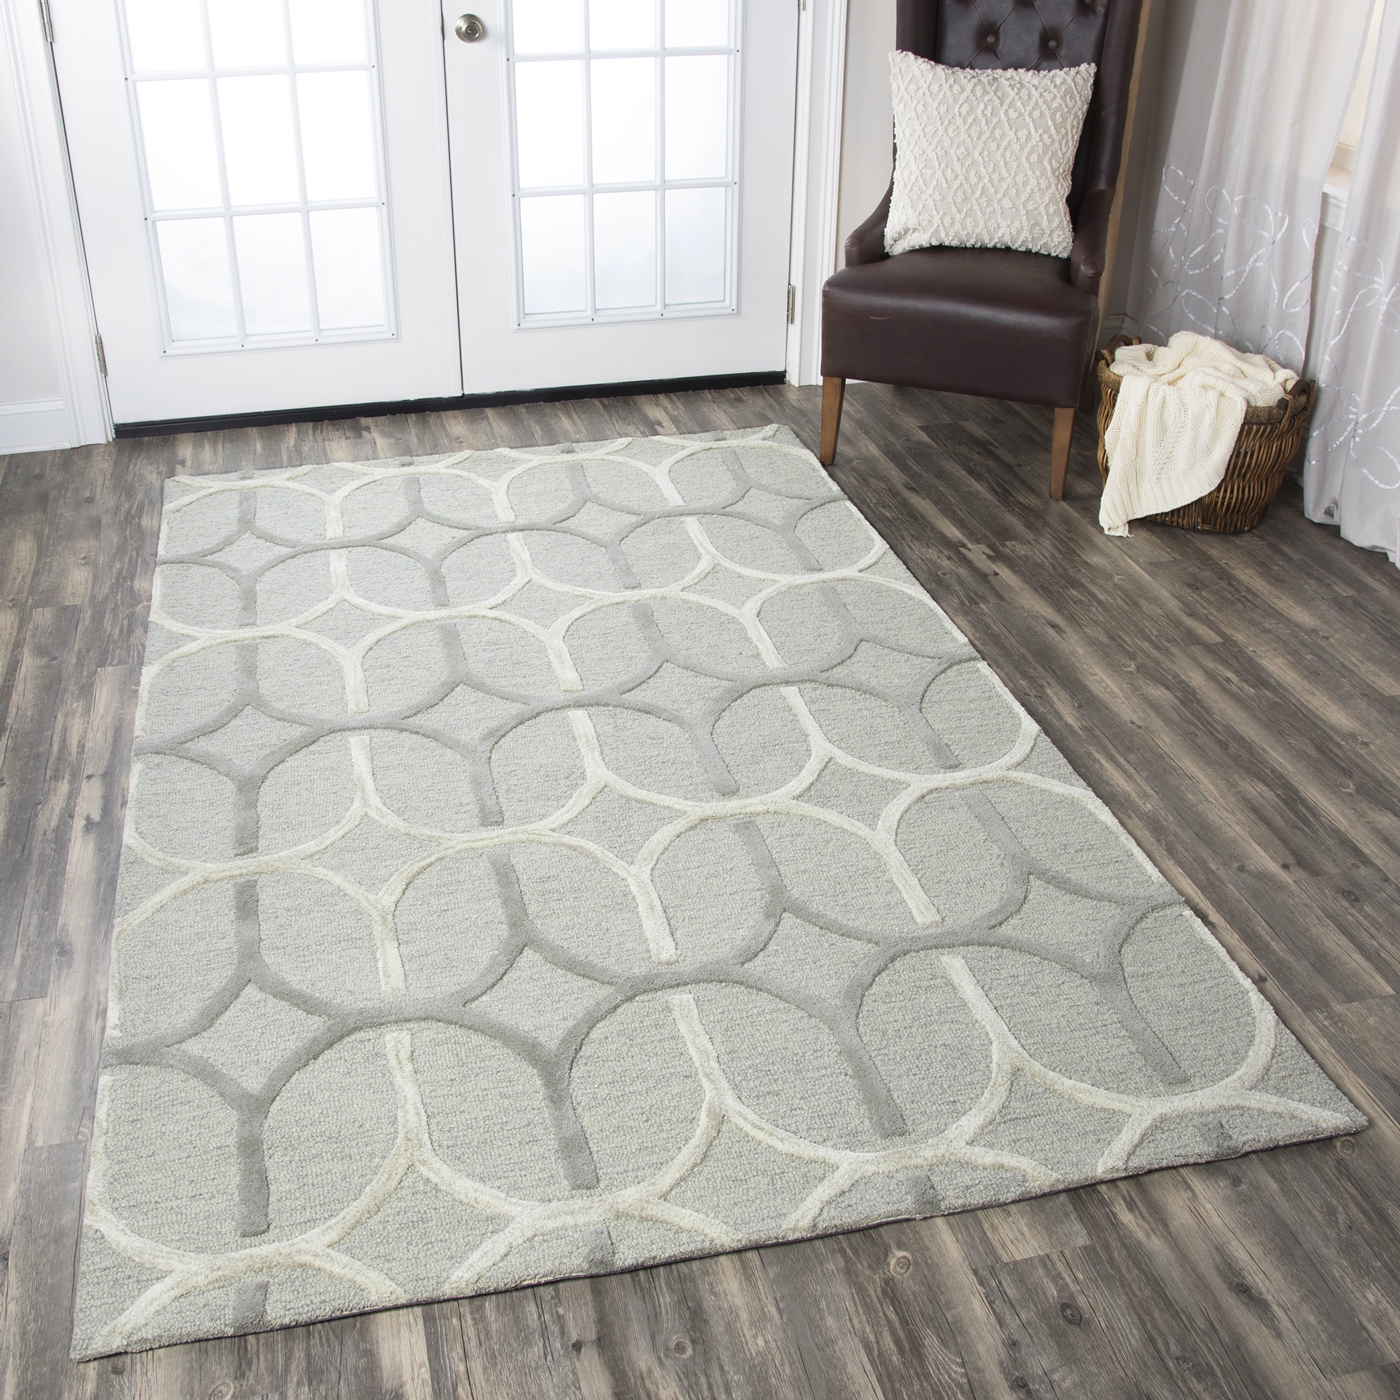 Royal Blue And White Trellis Rug: Caterine Oval Pattern Wool Area Rug In Grey & Offwhite, 5